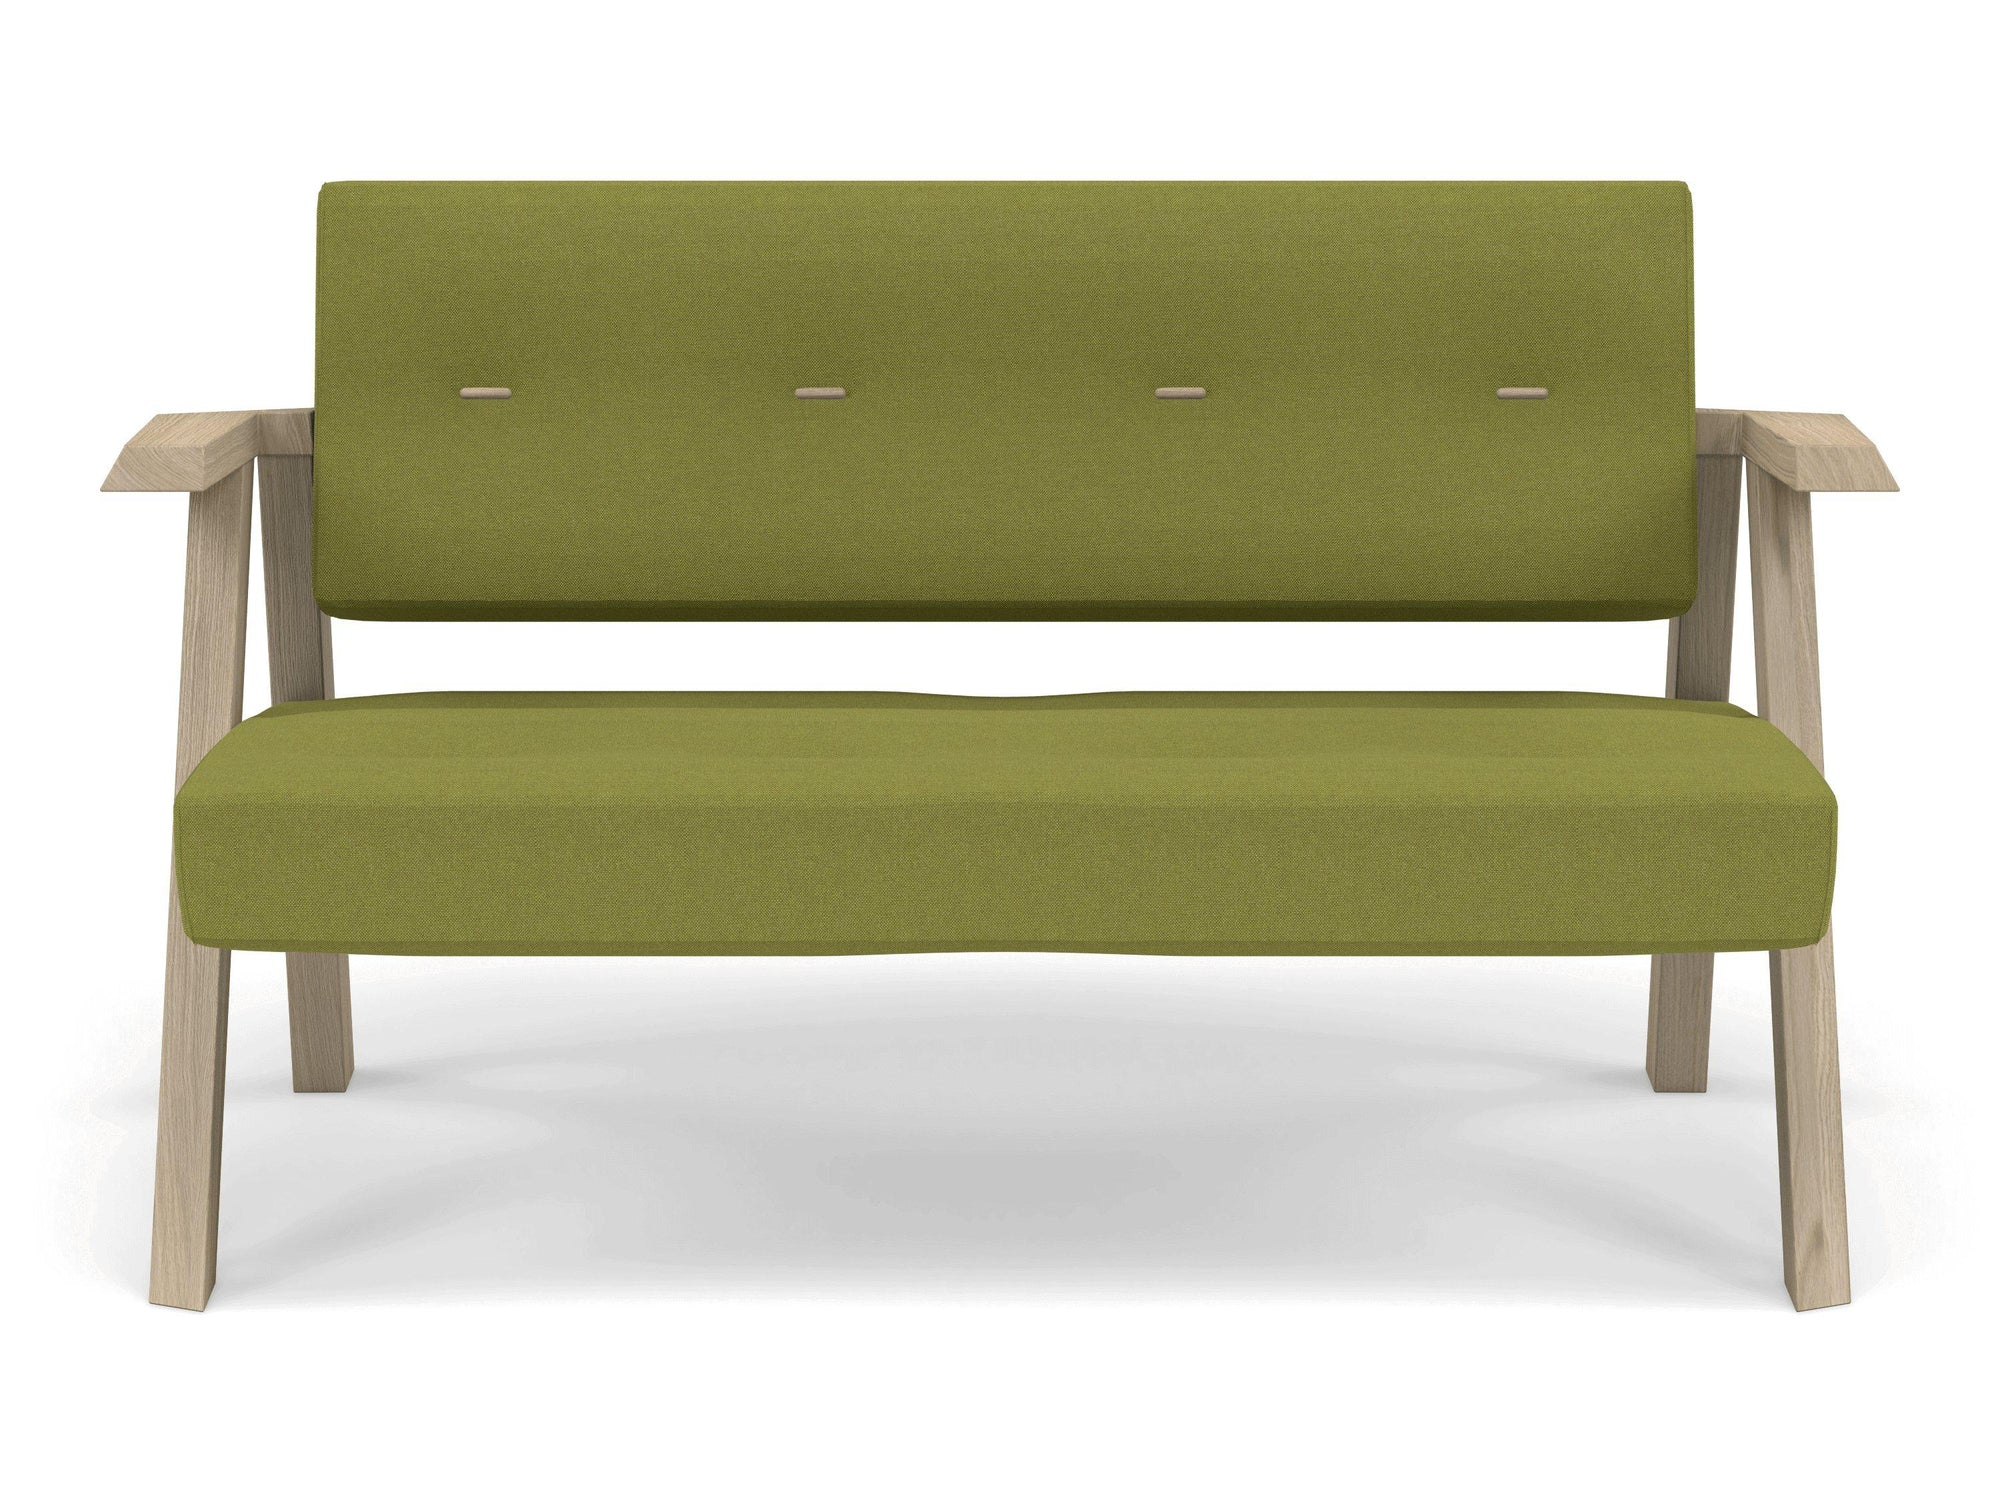 Classic Mid-century Design 2 Seater Sofa Armchair with Buttons in Lime Green Fabric-Natural Oak-Distinct Designs (London) Ltd